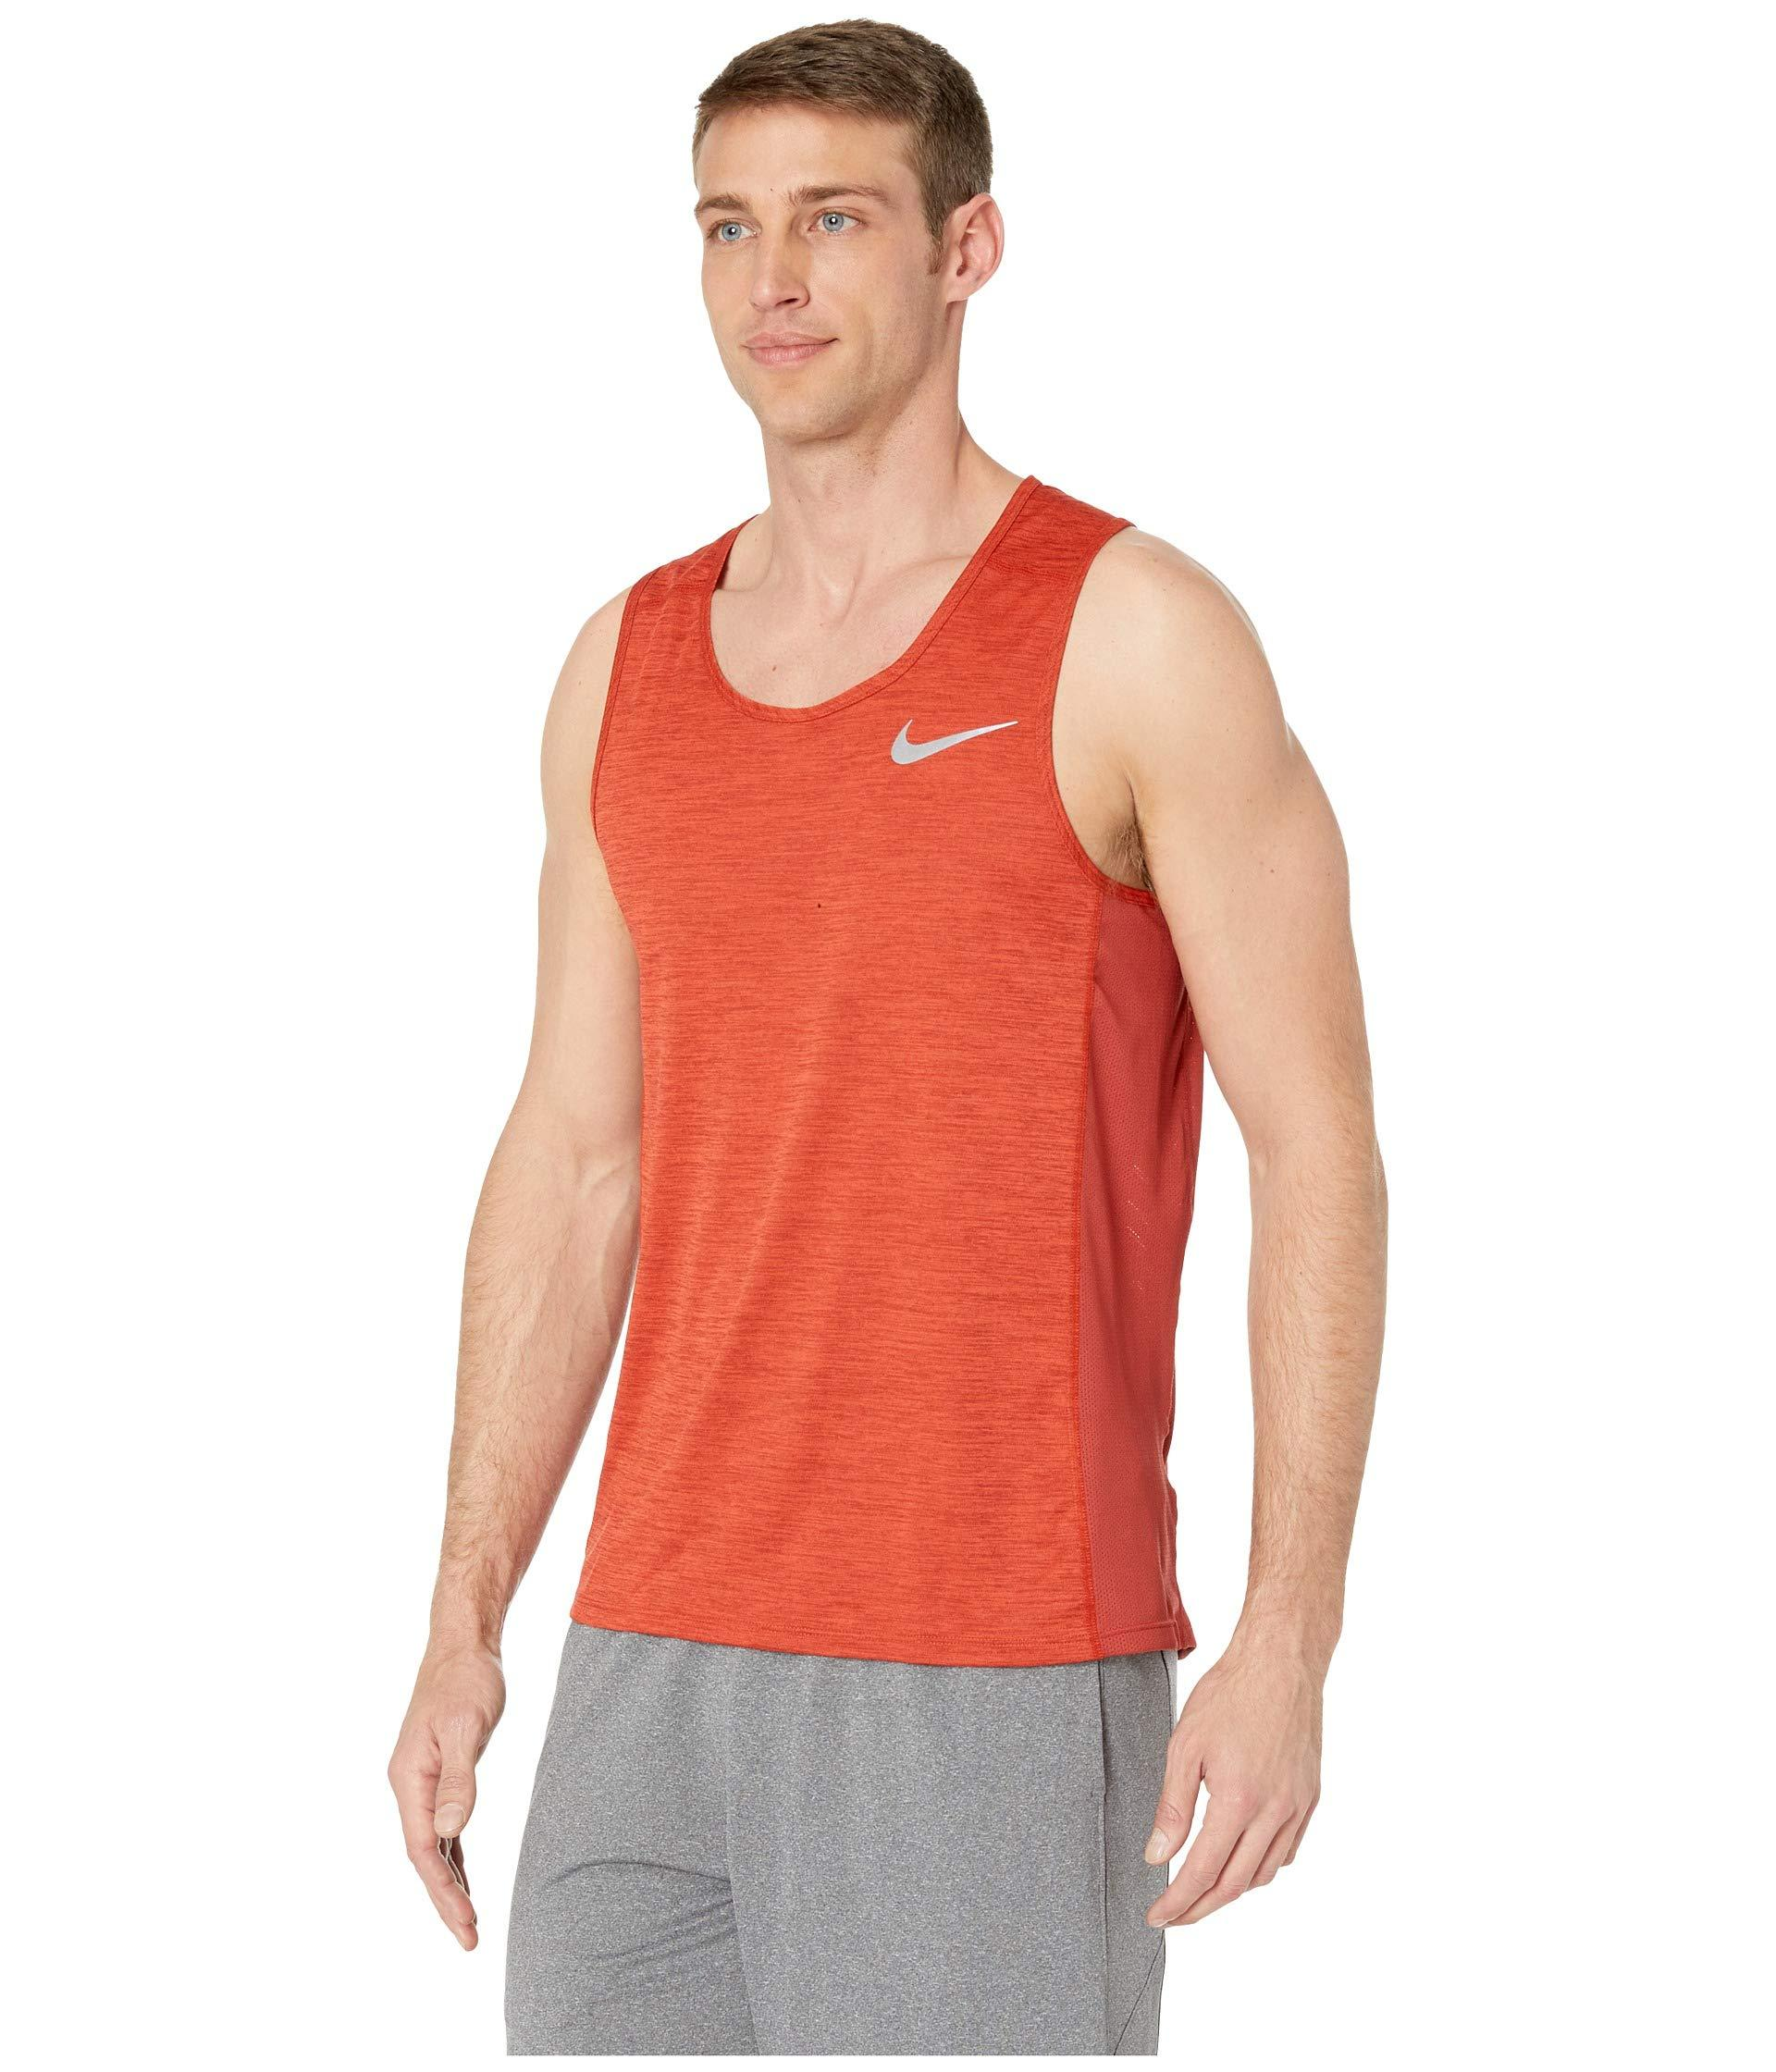 320ffd3befaa1f Lyst - Nike Dry Miler Running Tank in Red for Men - Save 21%